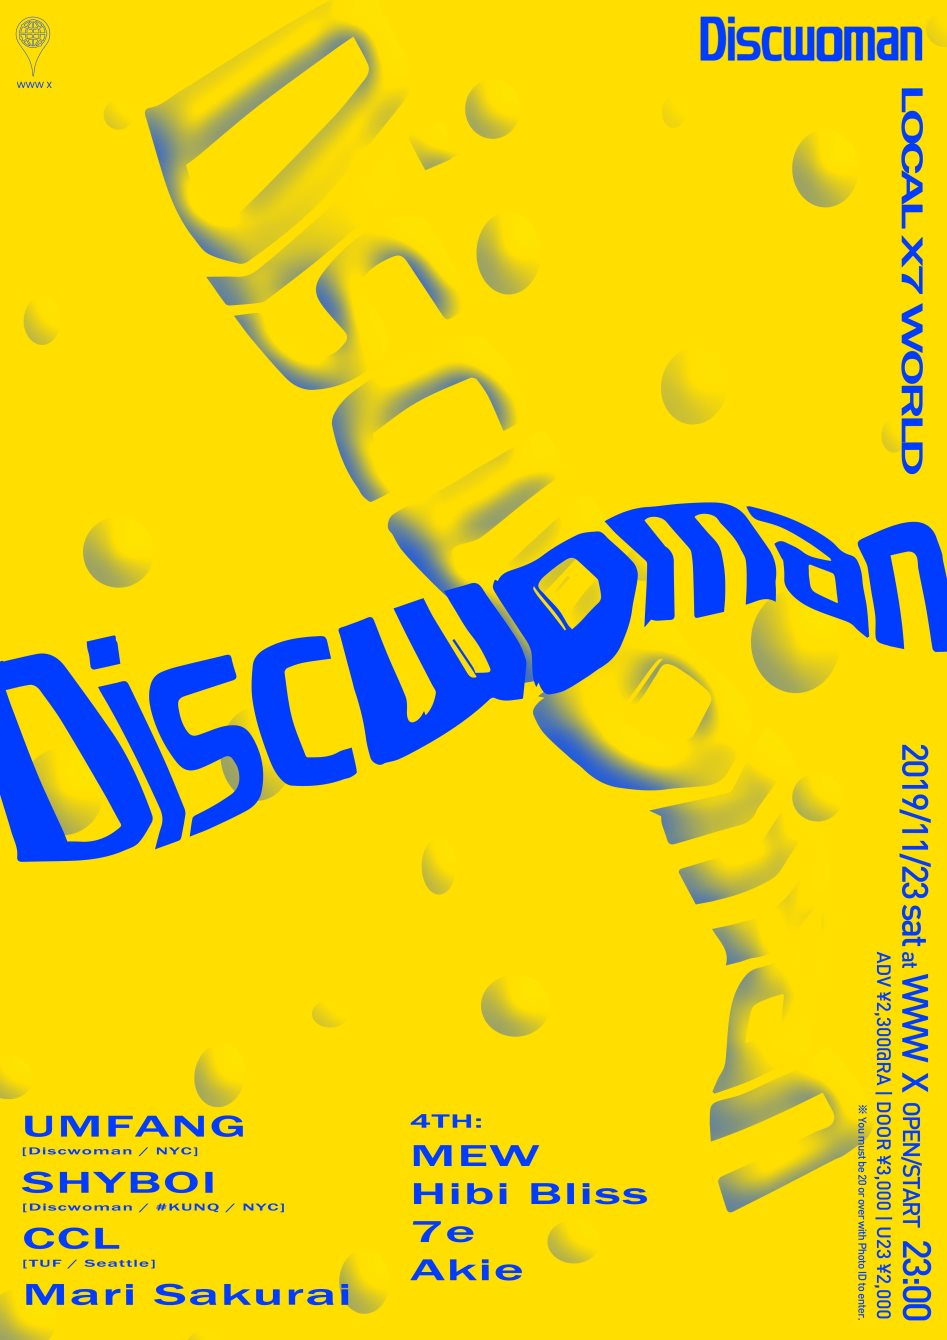 Local X7 World Discwoman with Umfang & Shyboi & CCL - Flyer front